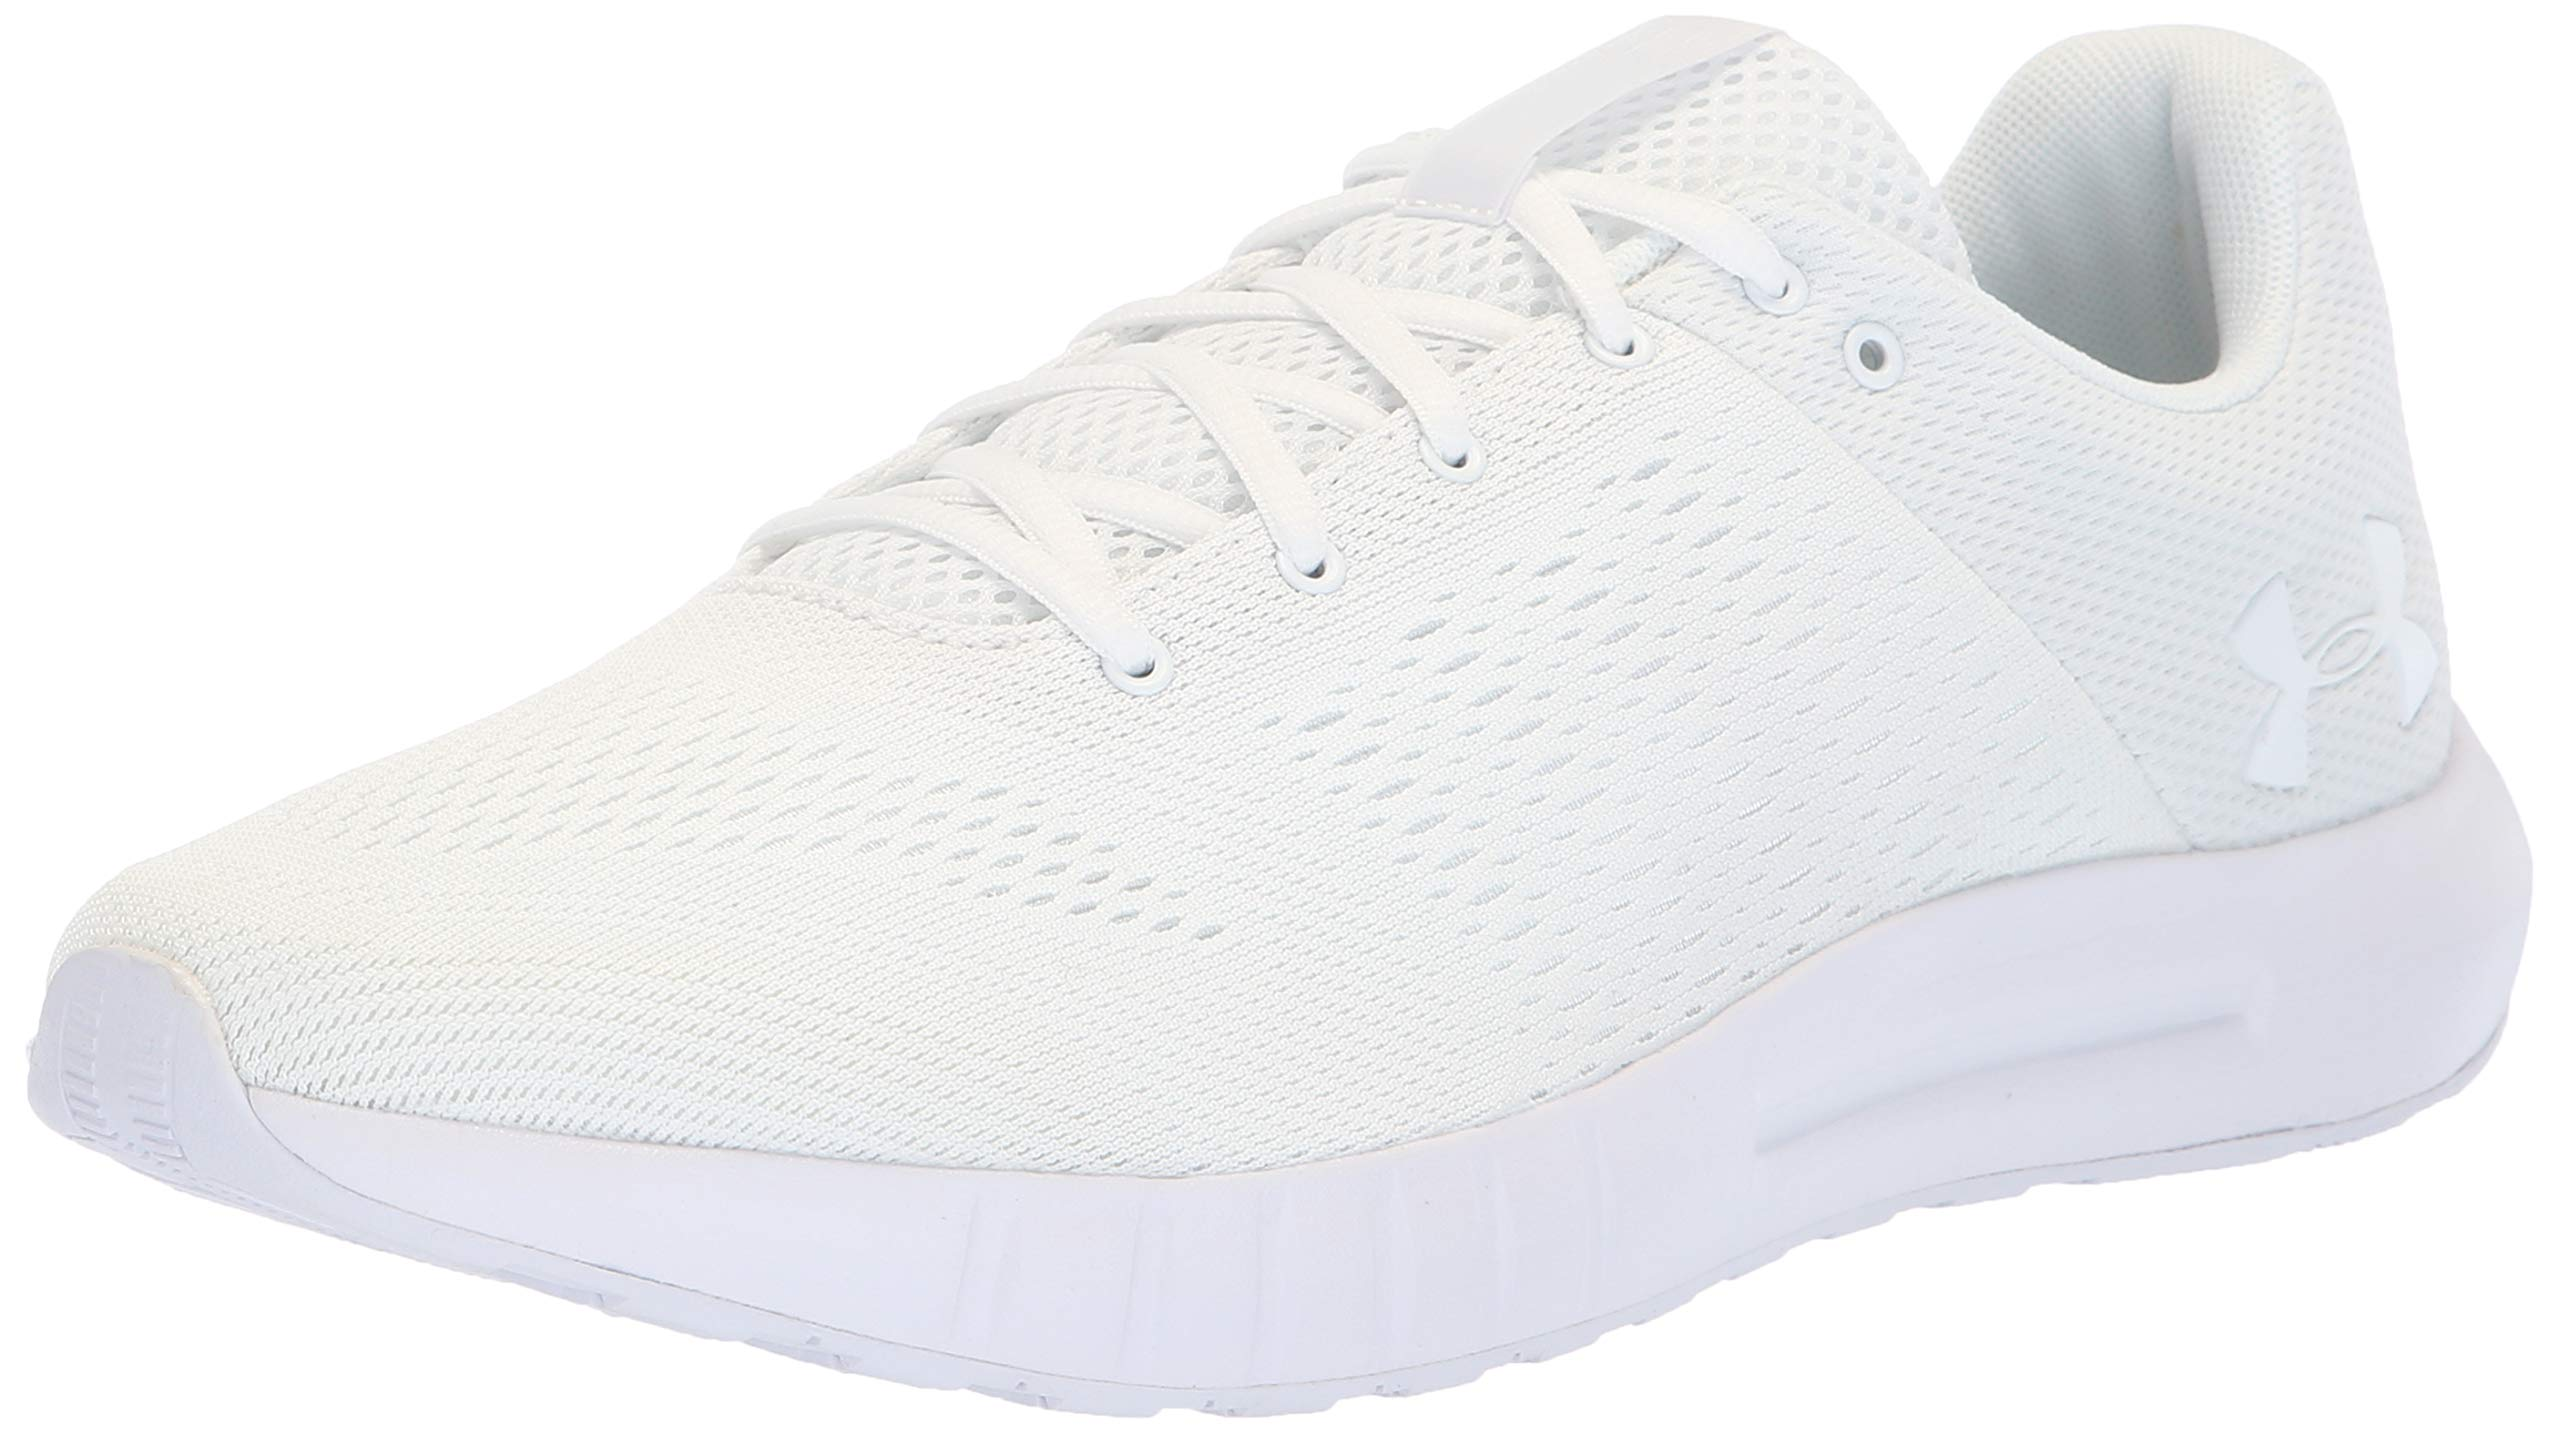 Under Armour mens Micro G Pursuit Running Shoe, White (112)/White, 10 by Under Armour